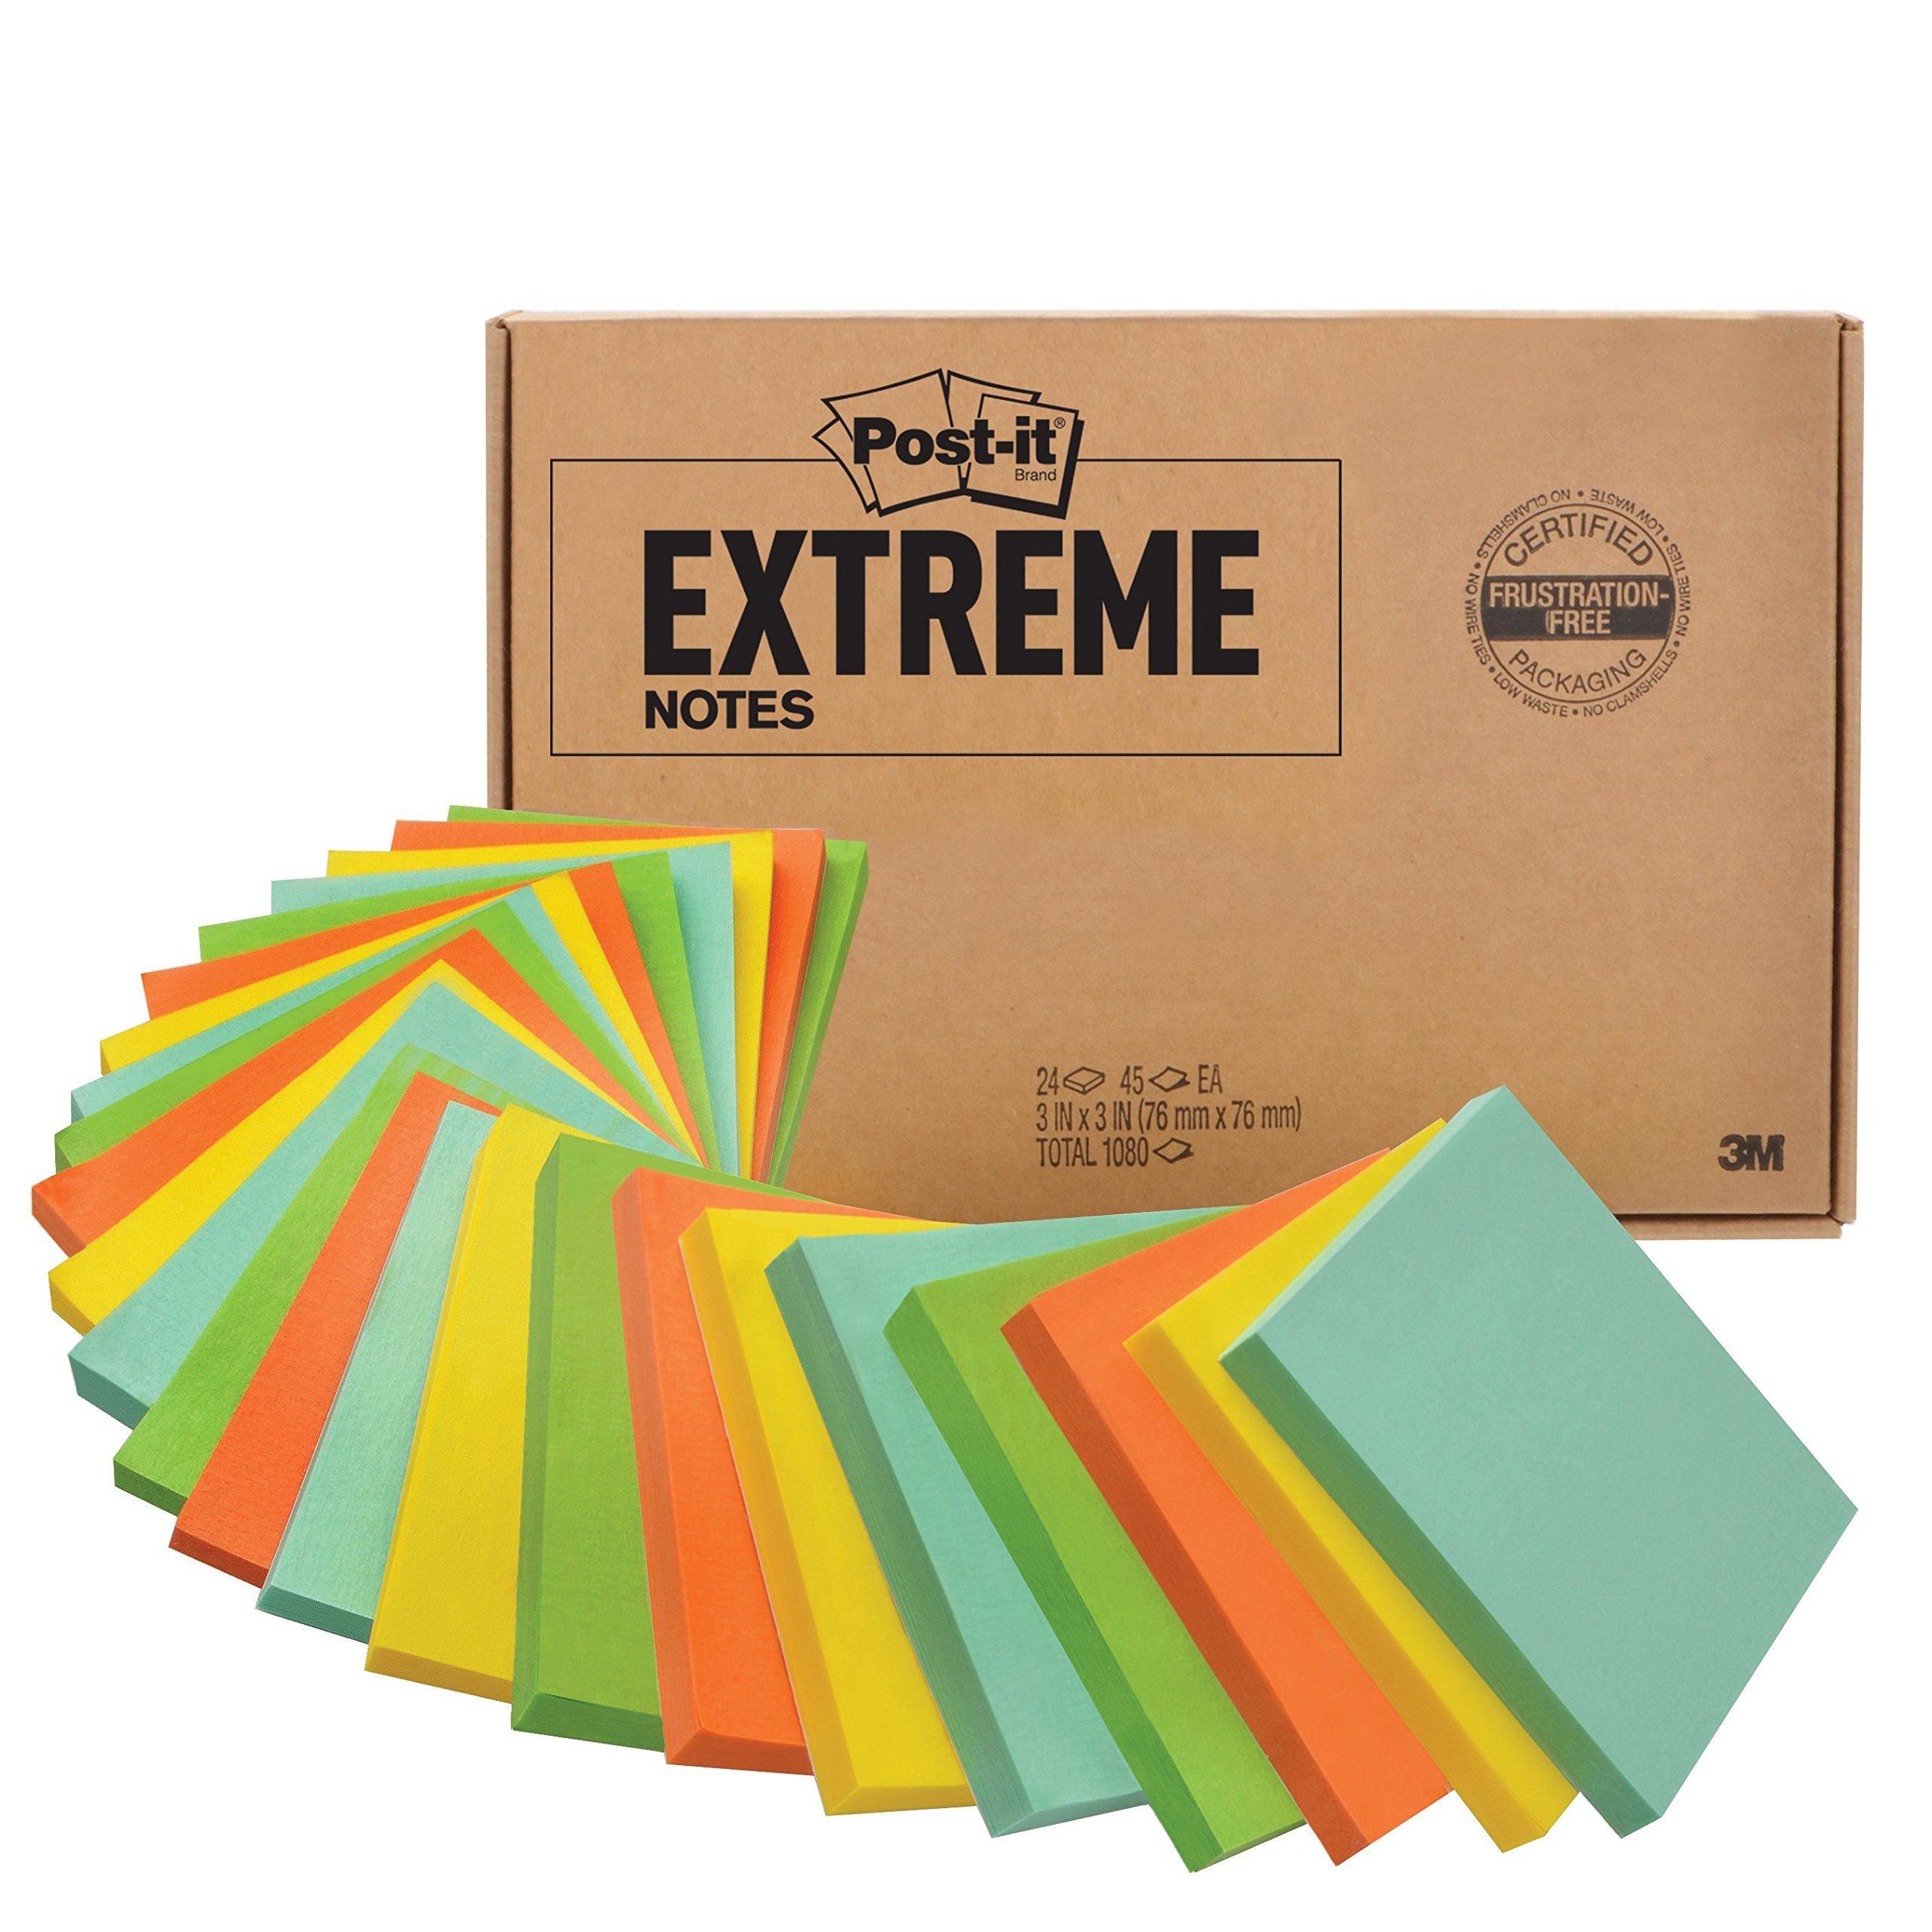 Post-it Extreme Notes, Made with Dura-Hold Paper and Adhesive, 24 Pads, Green, Yellow, Mint, Orange